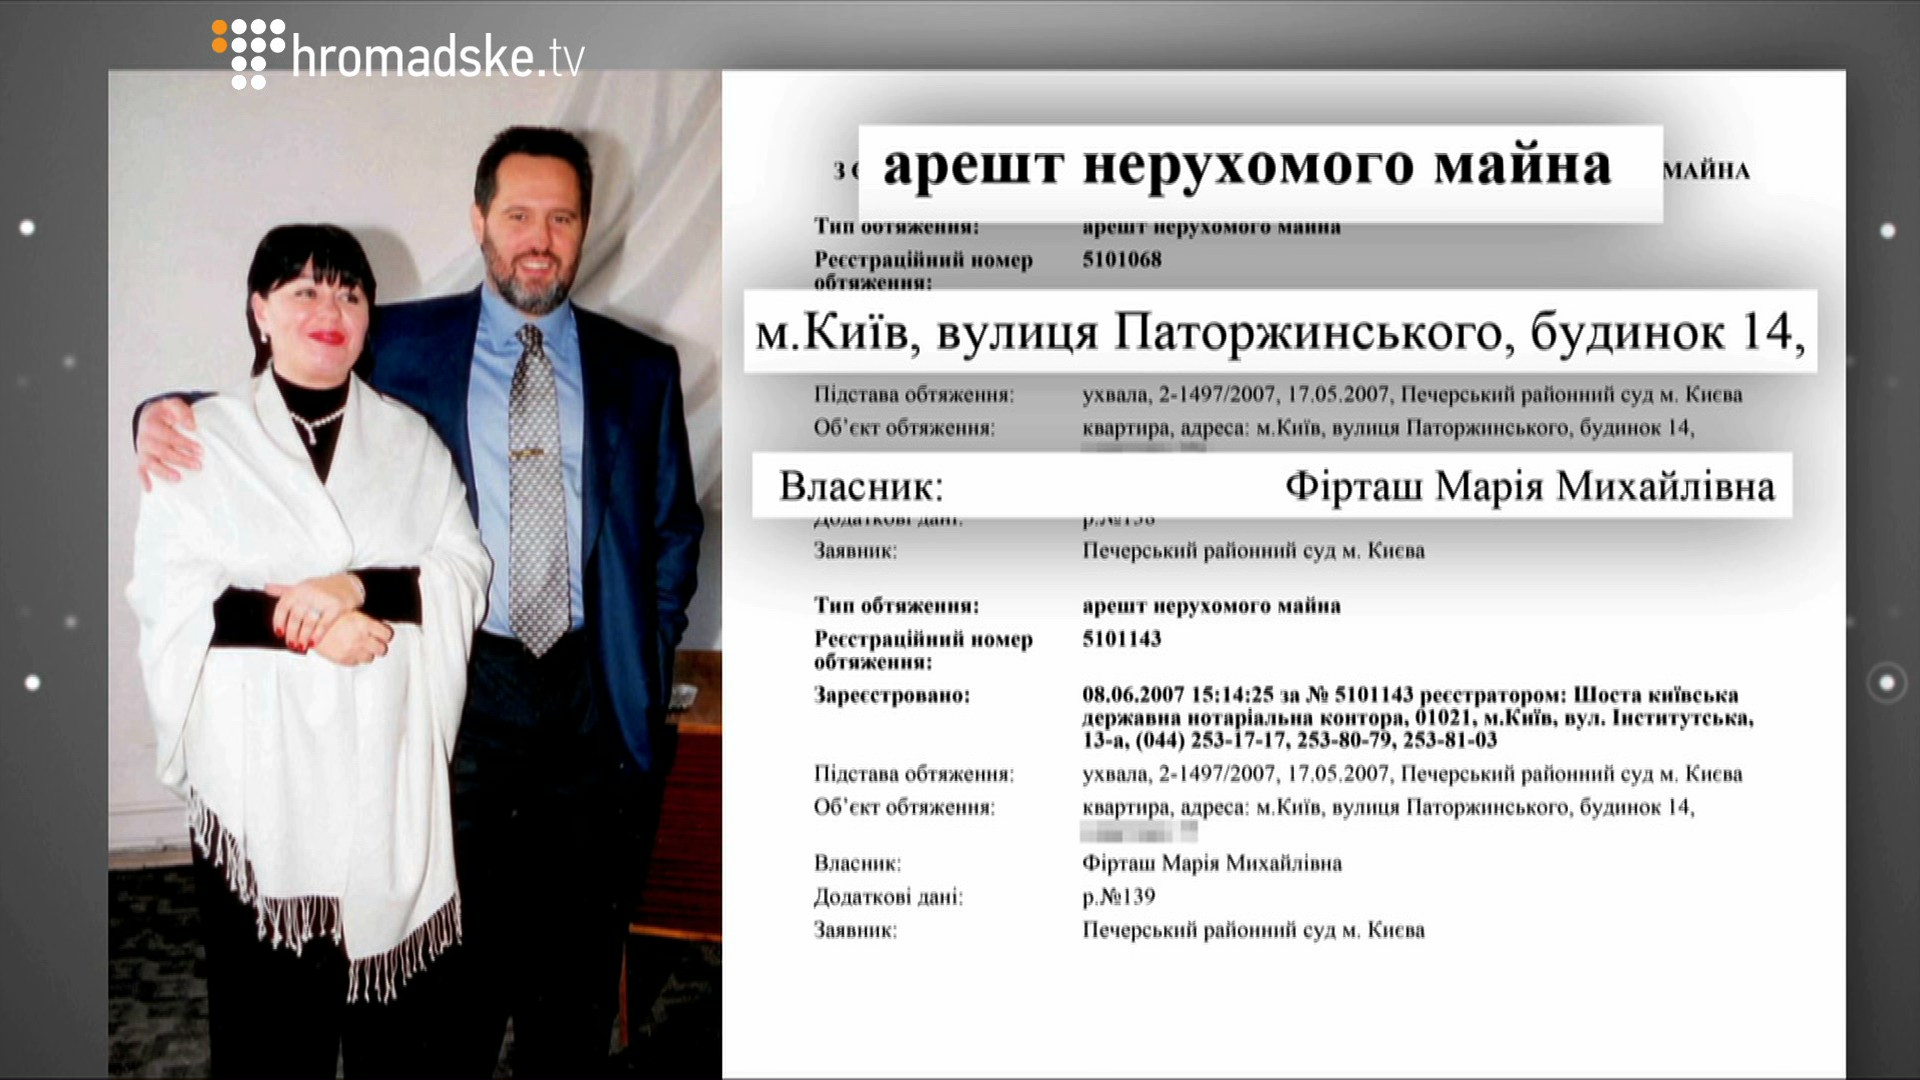 FIRTASH_screen 9